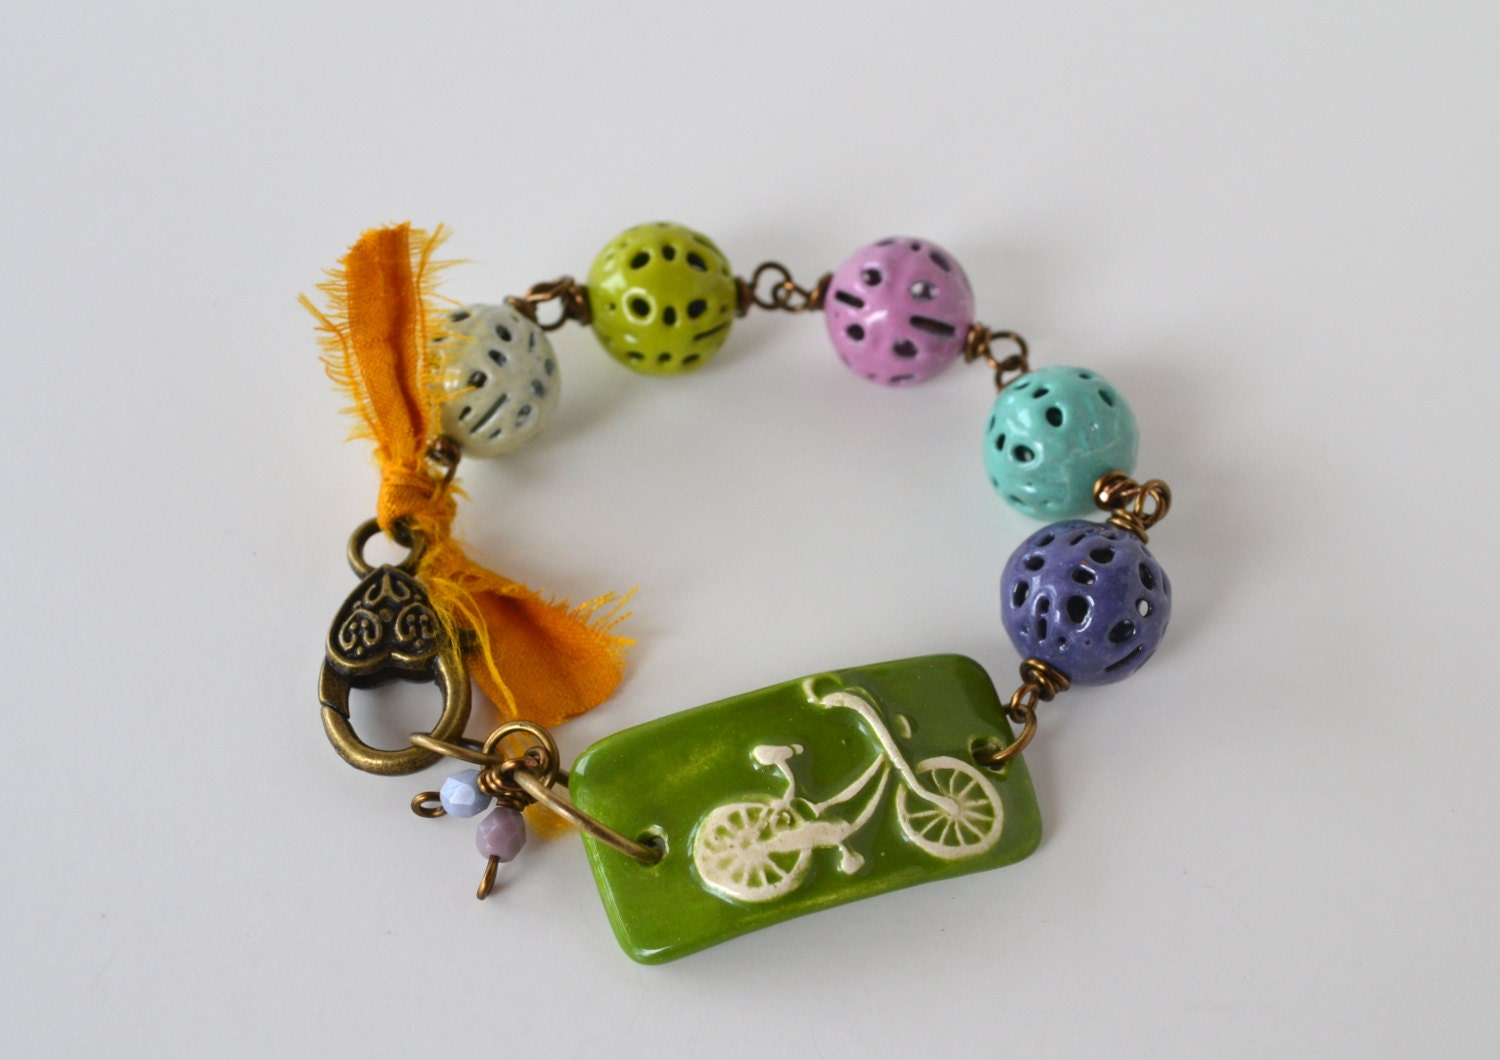 Bicycle Bracelet - ceramic bar, green bracelet, enamel beads, glass on metal - ArtIncendi